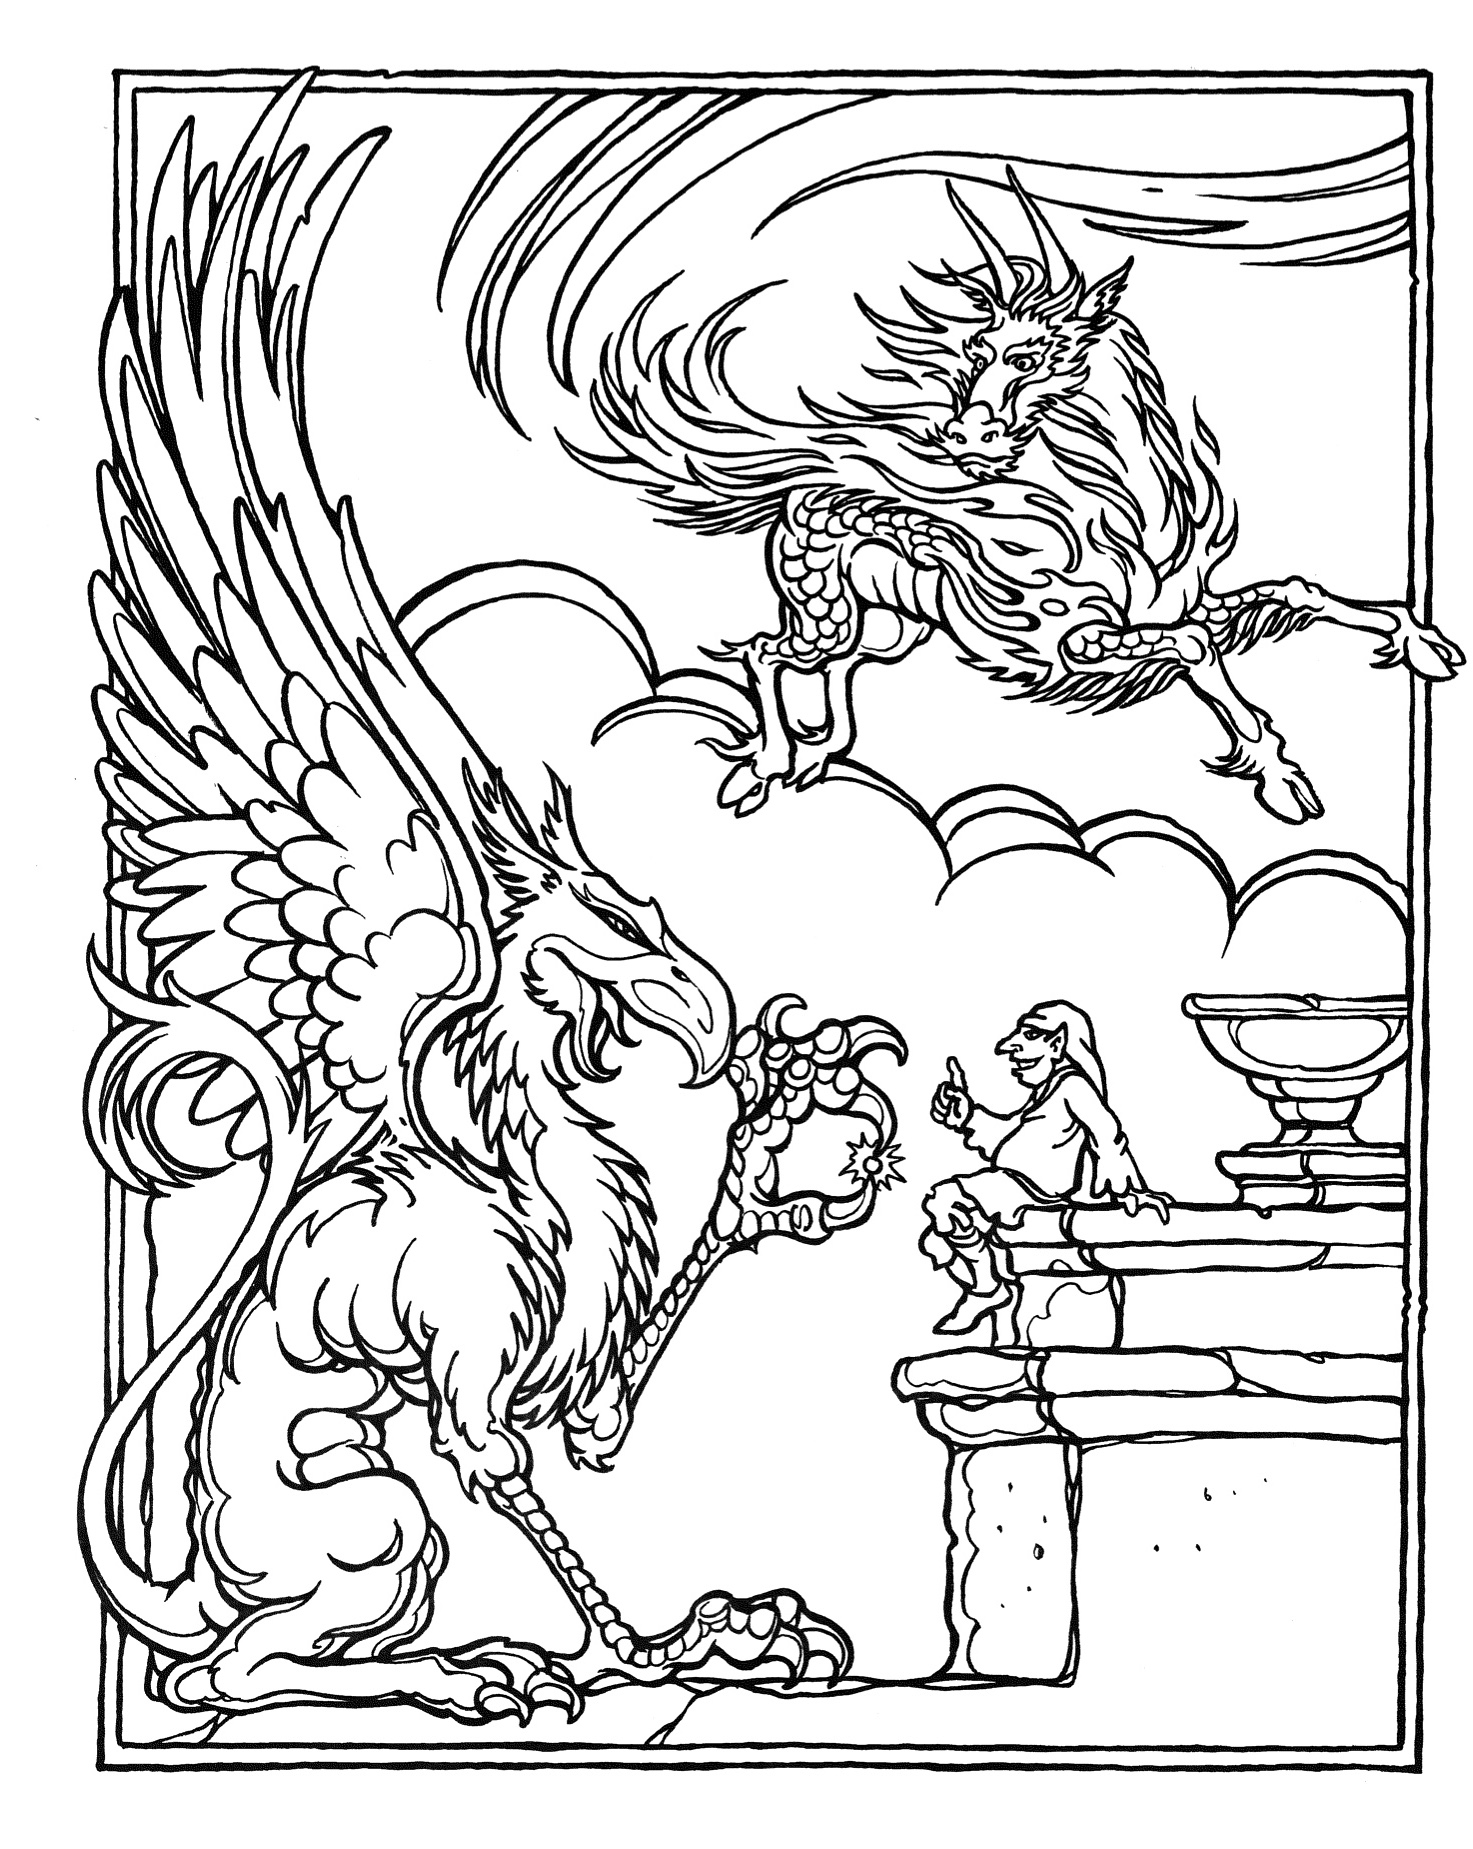 d is for dragon coloring page monsters and heroes of the realms a dungeons dragons for page is d coloring dragon